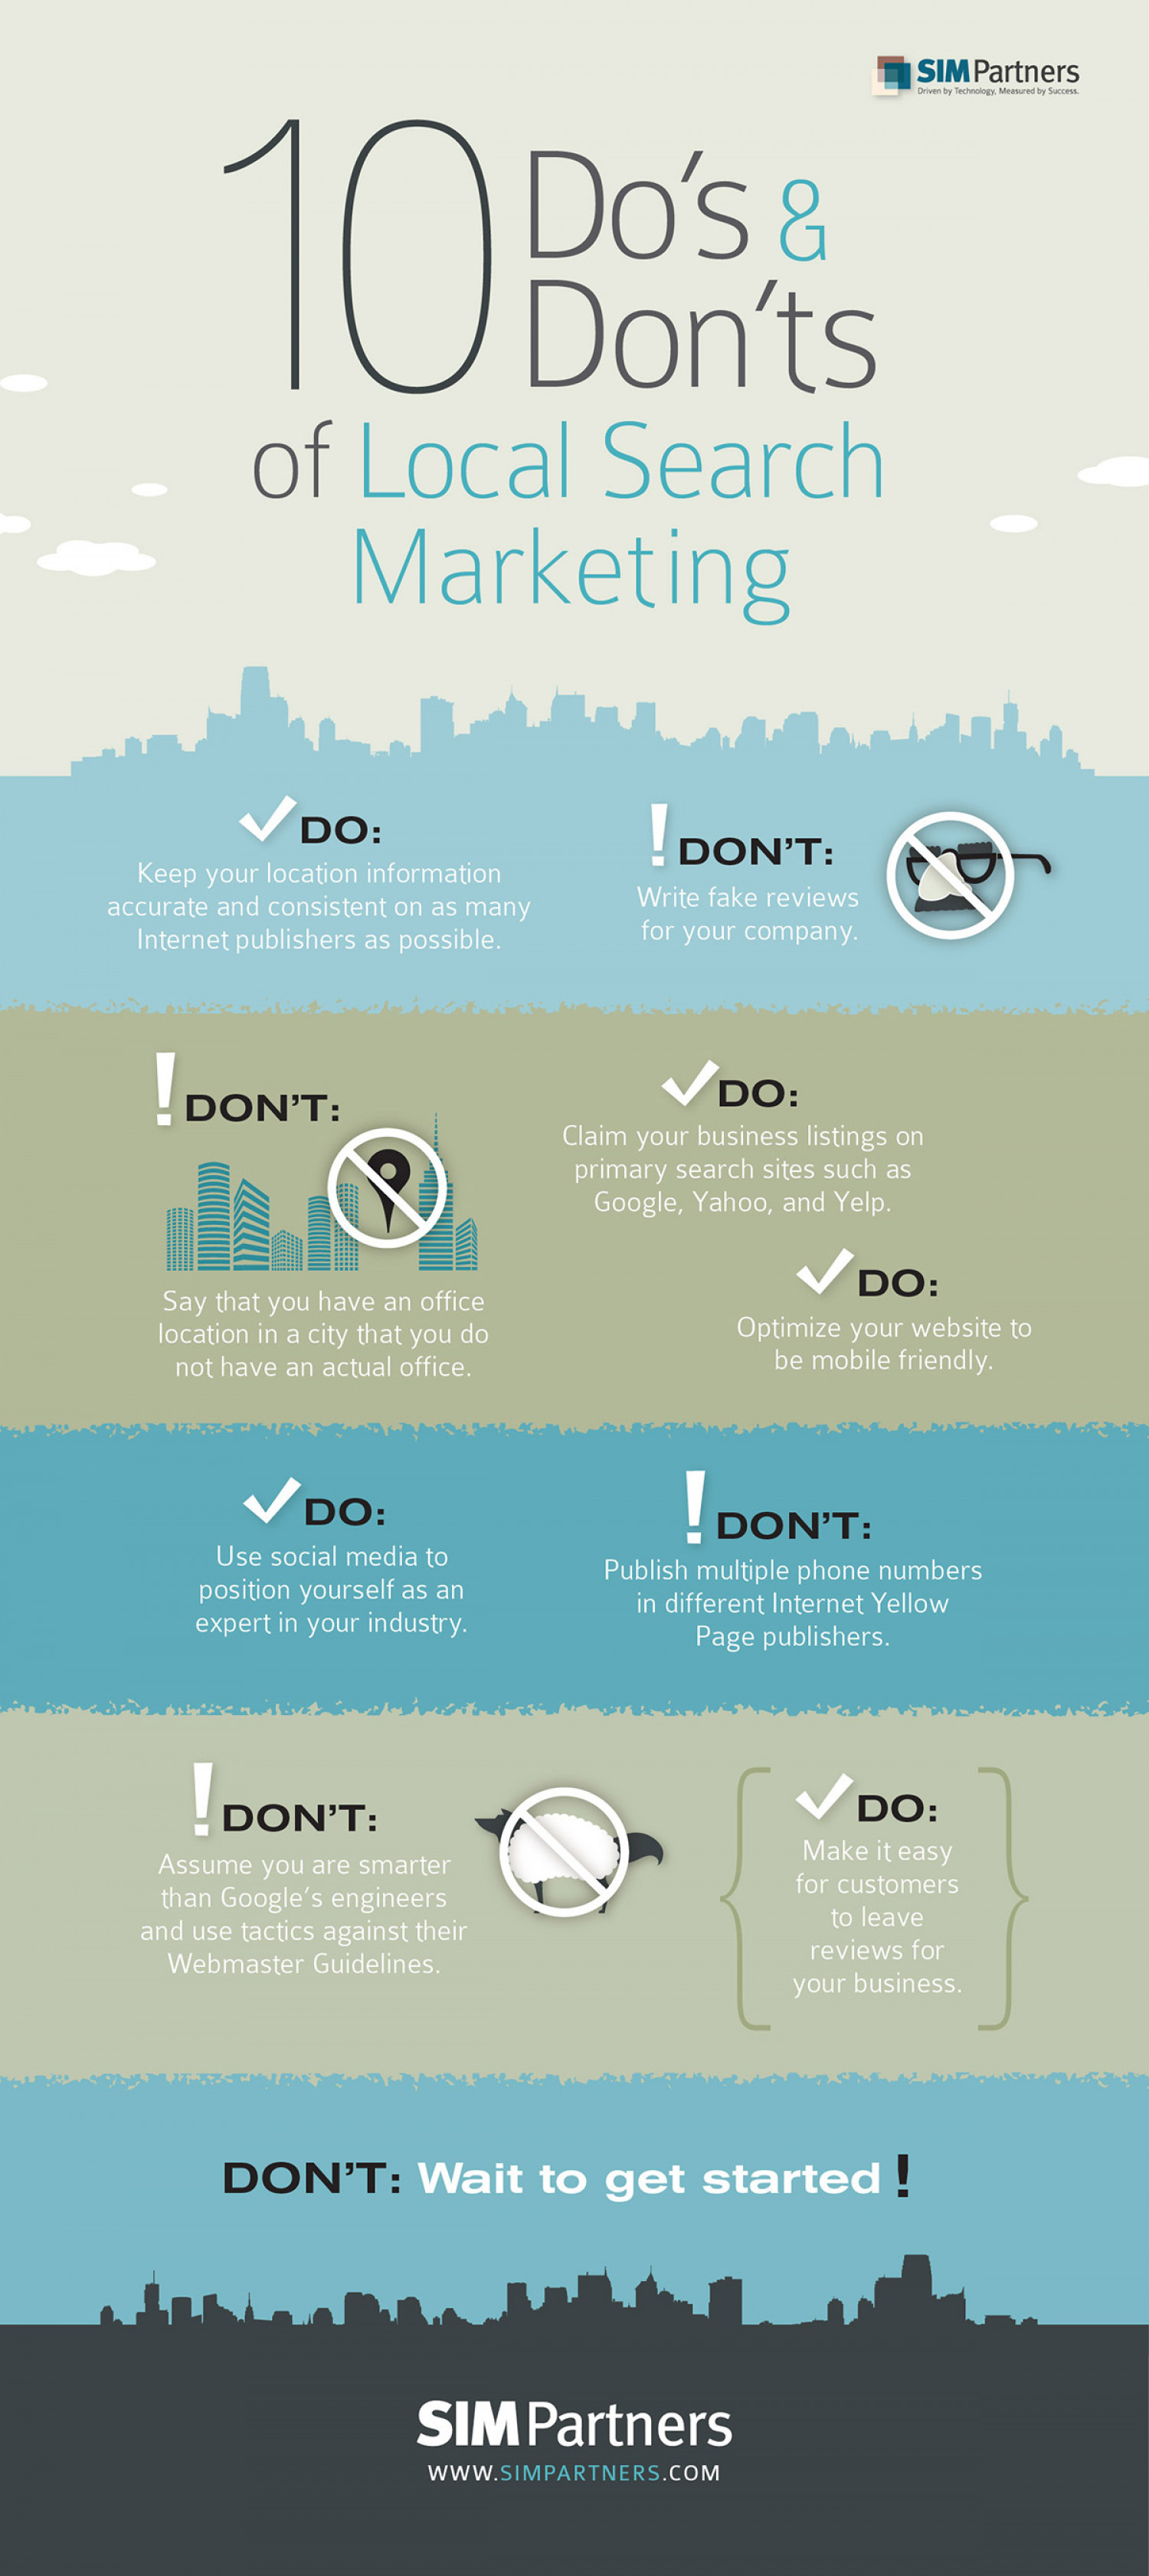 10 Do's and Don'ts of Local Search Marketing Infographic